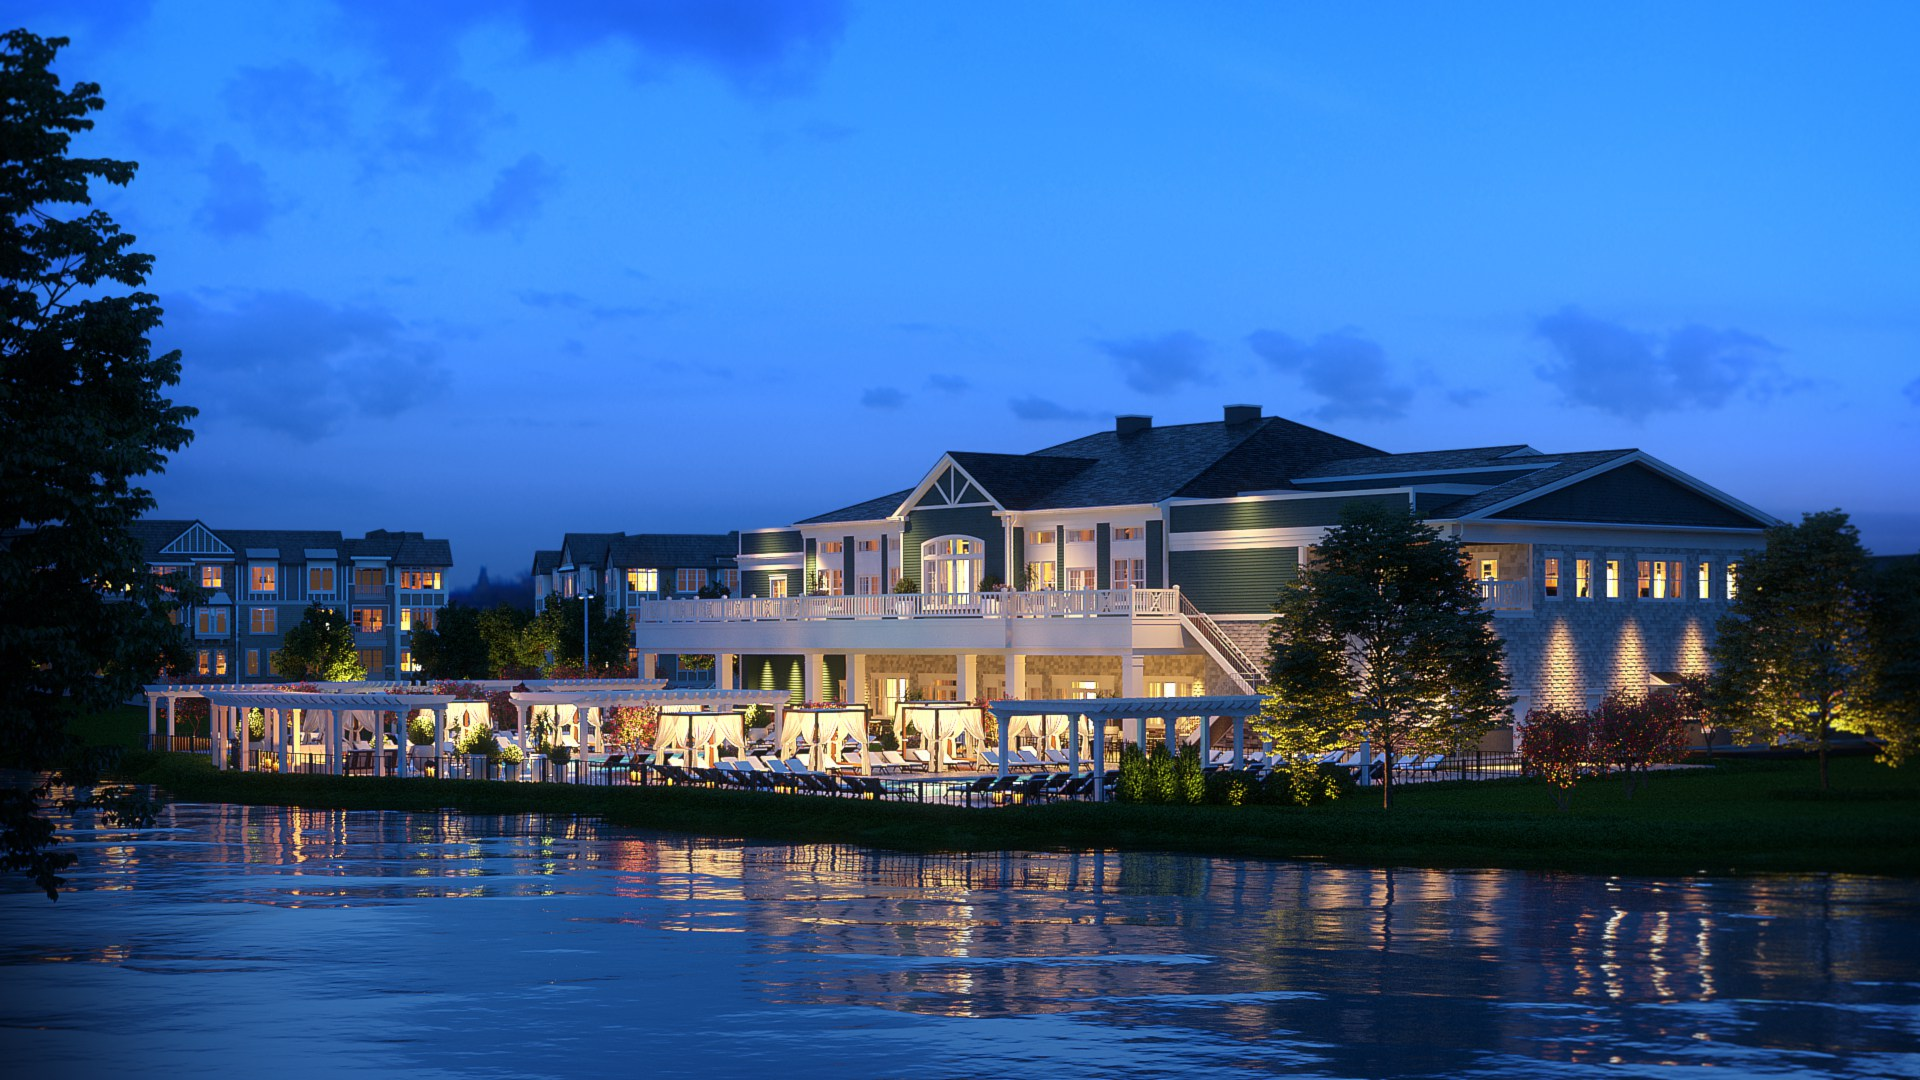 Country PointePlainview-Clubhouse-Pool-Deck-Dusk-Angled-Exterior-HI-REZ.jpg